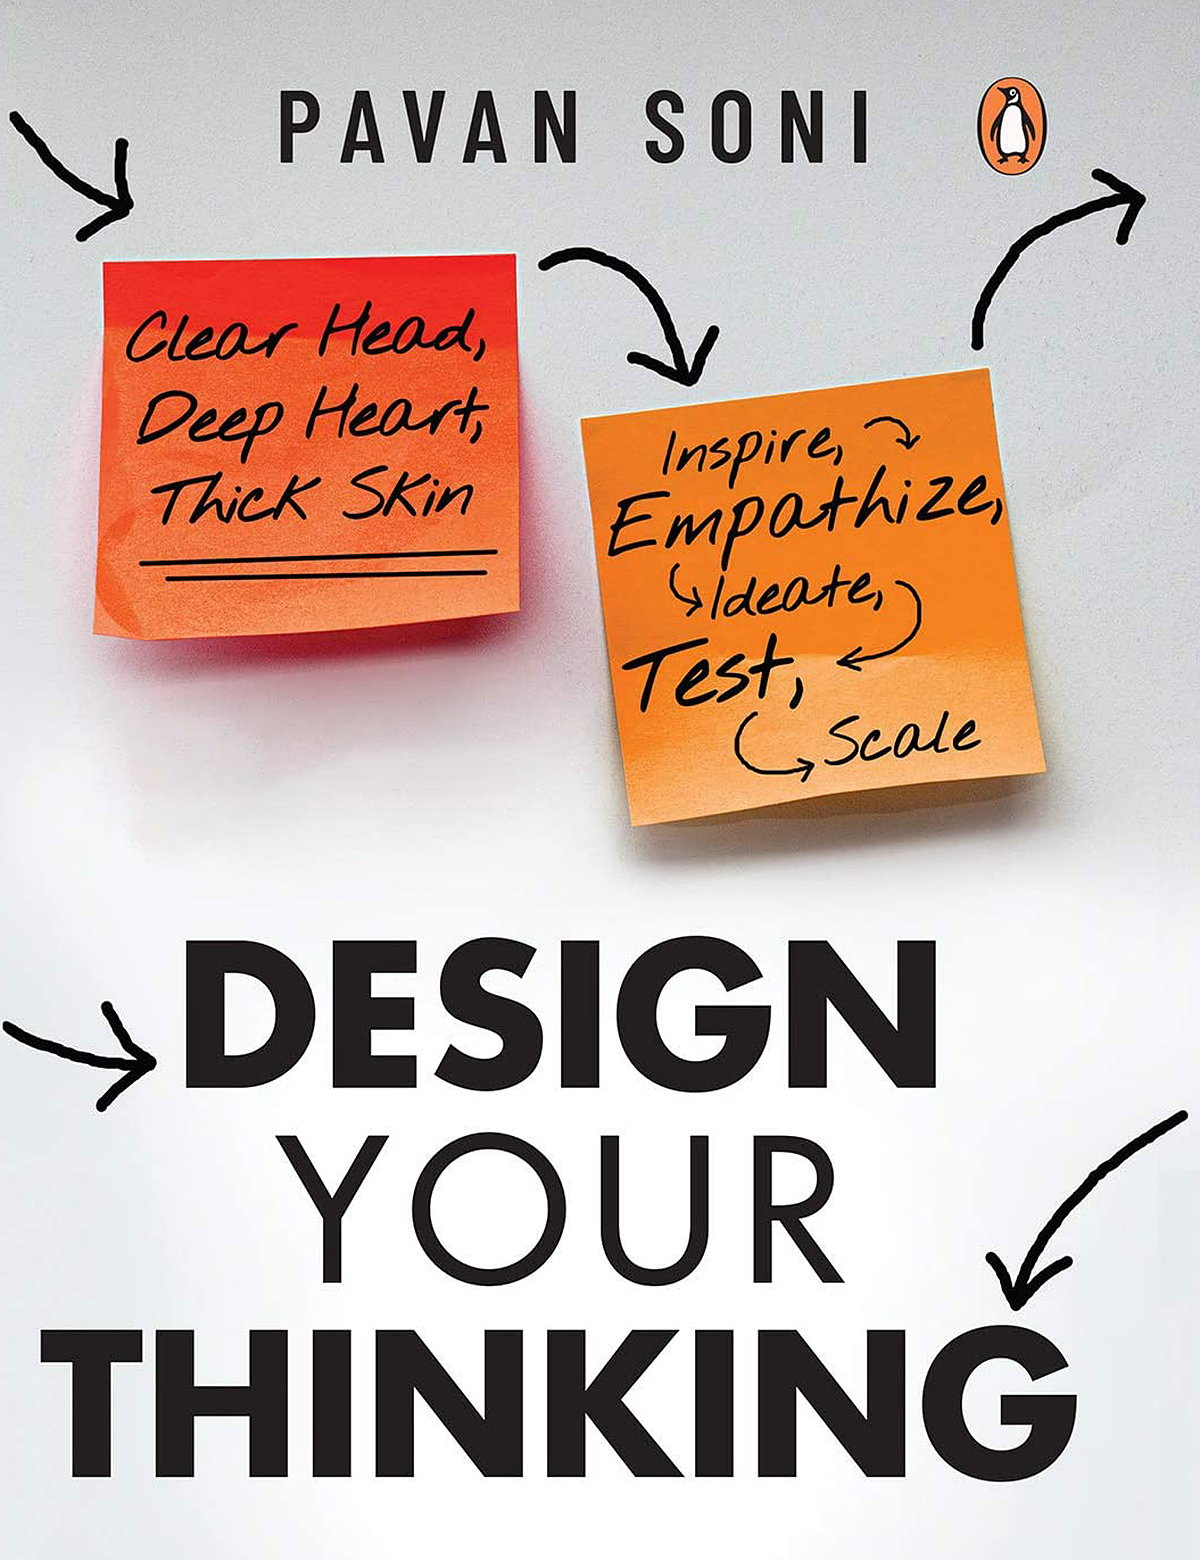 Design Your Thinking